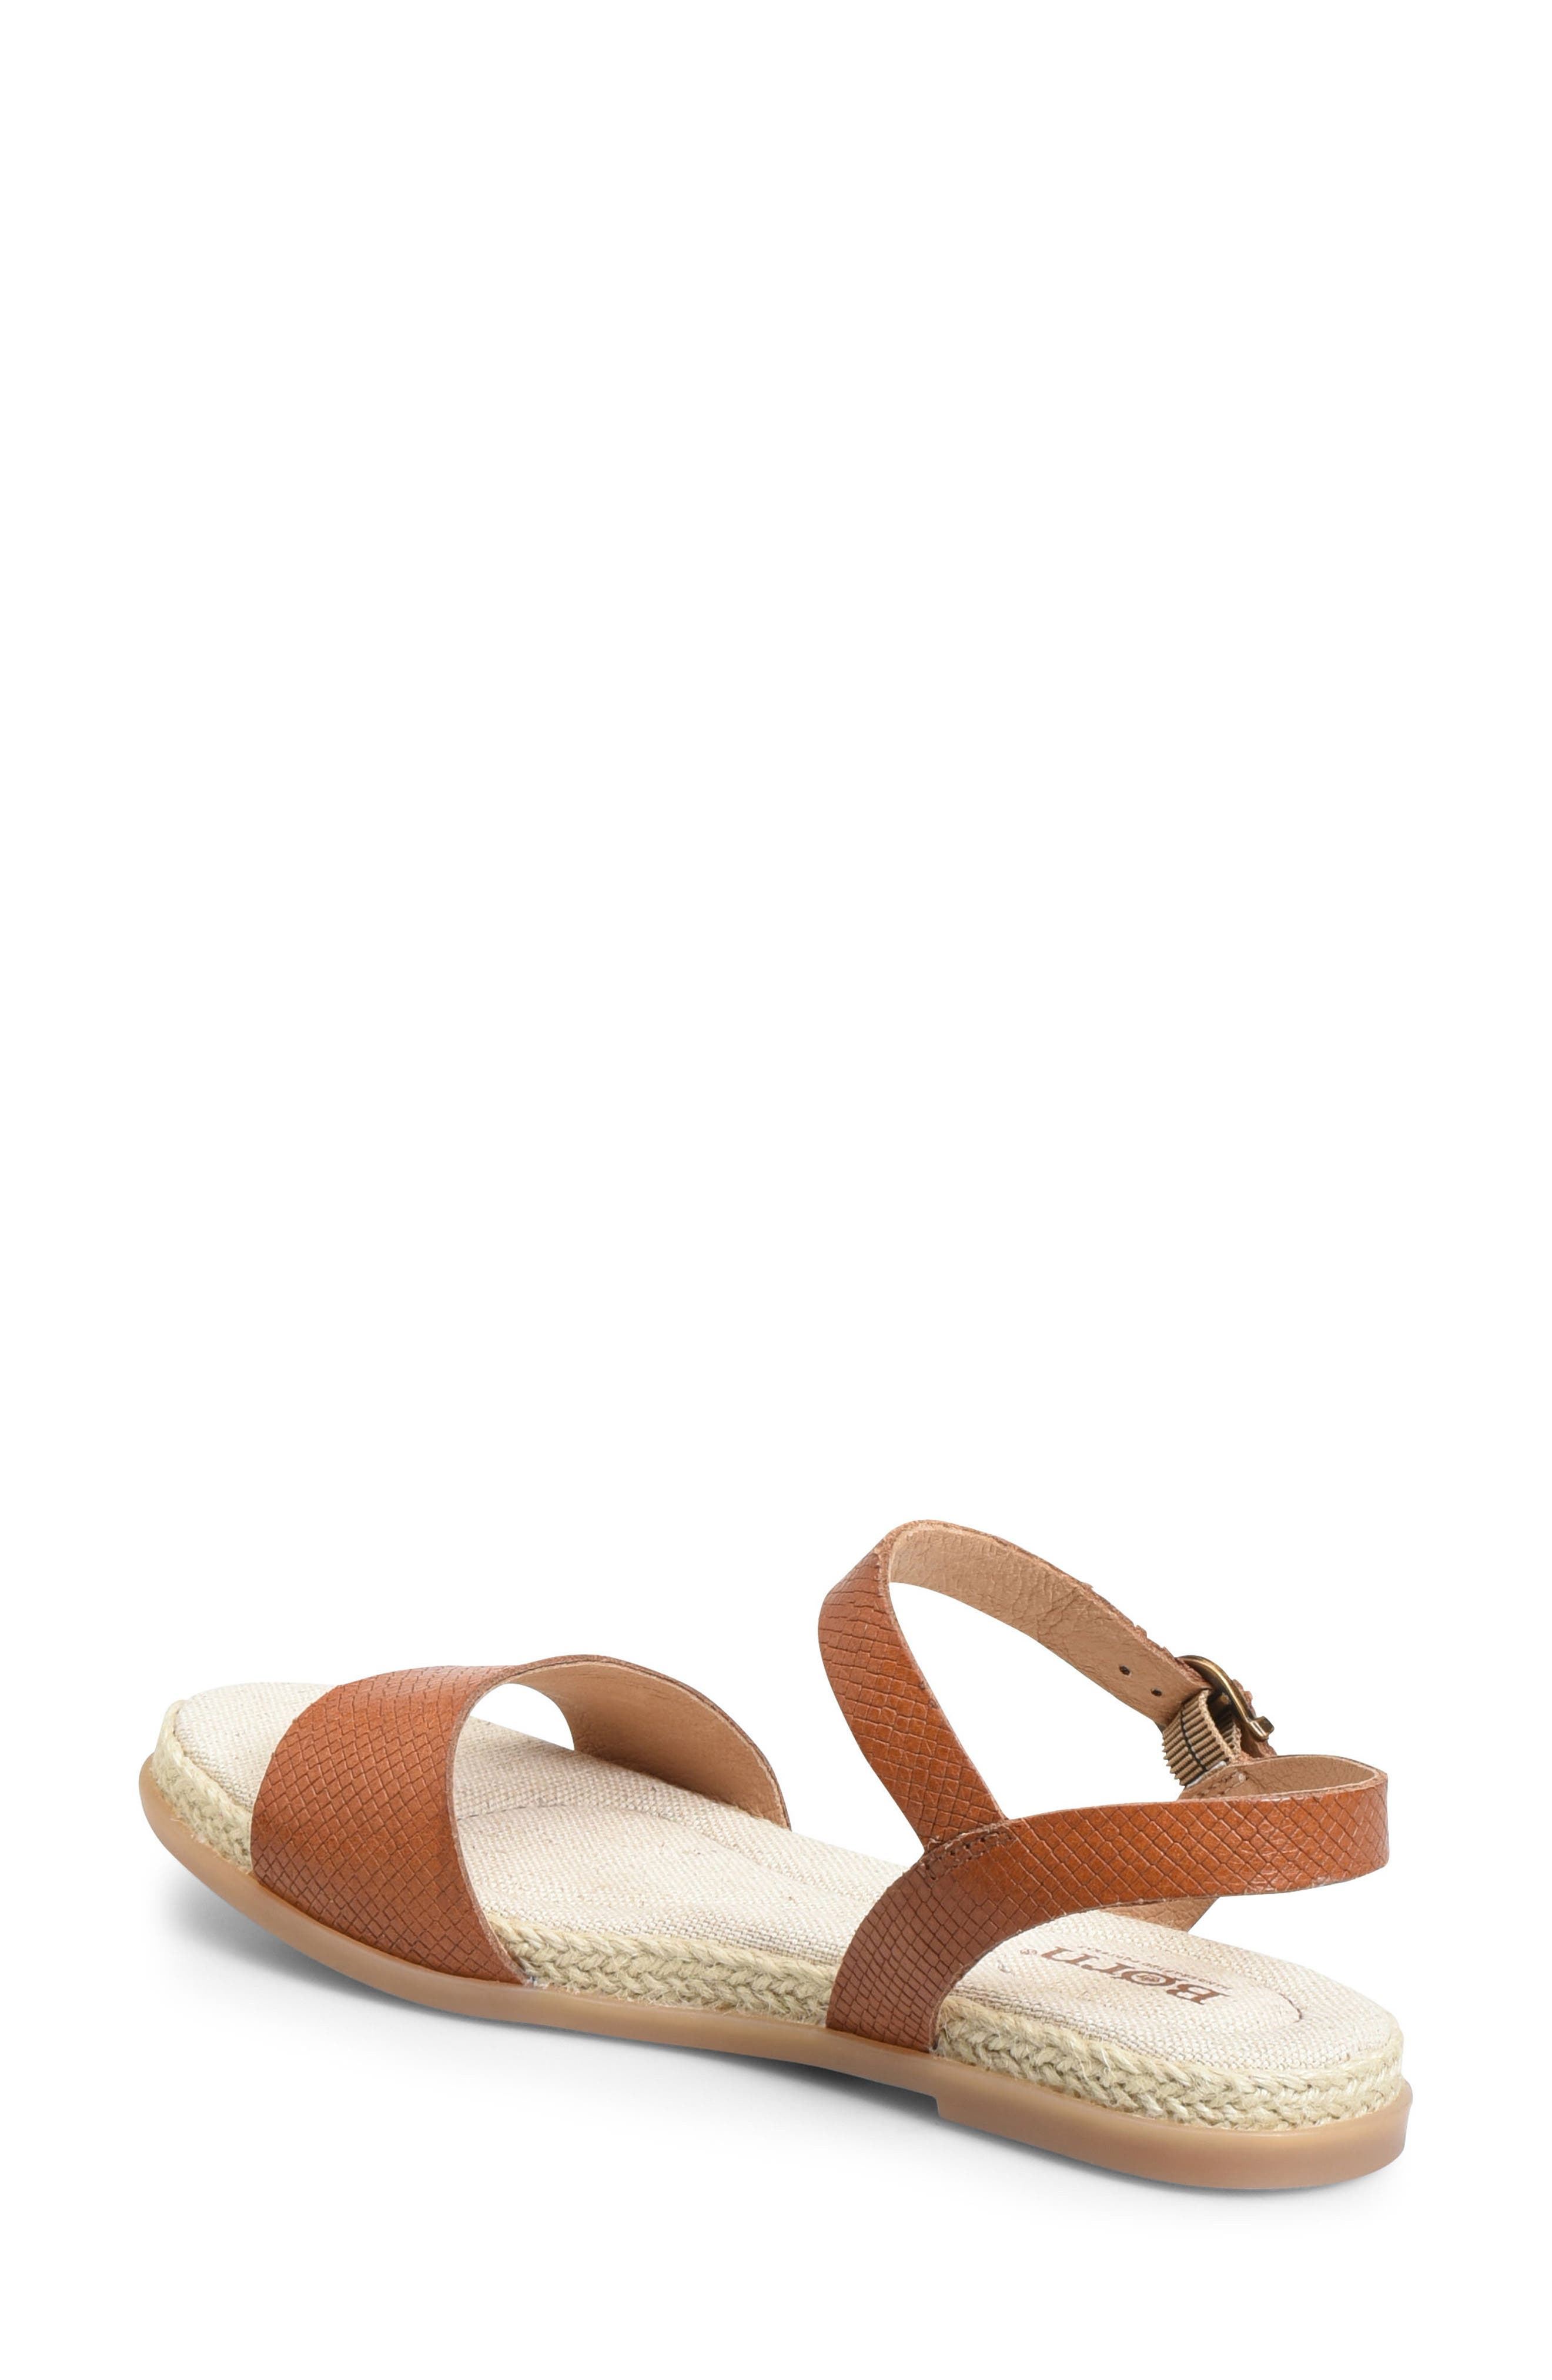 Welch Sandal,                             Alternate thumbnail 2, color,                             Brown Leather